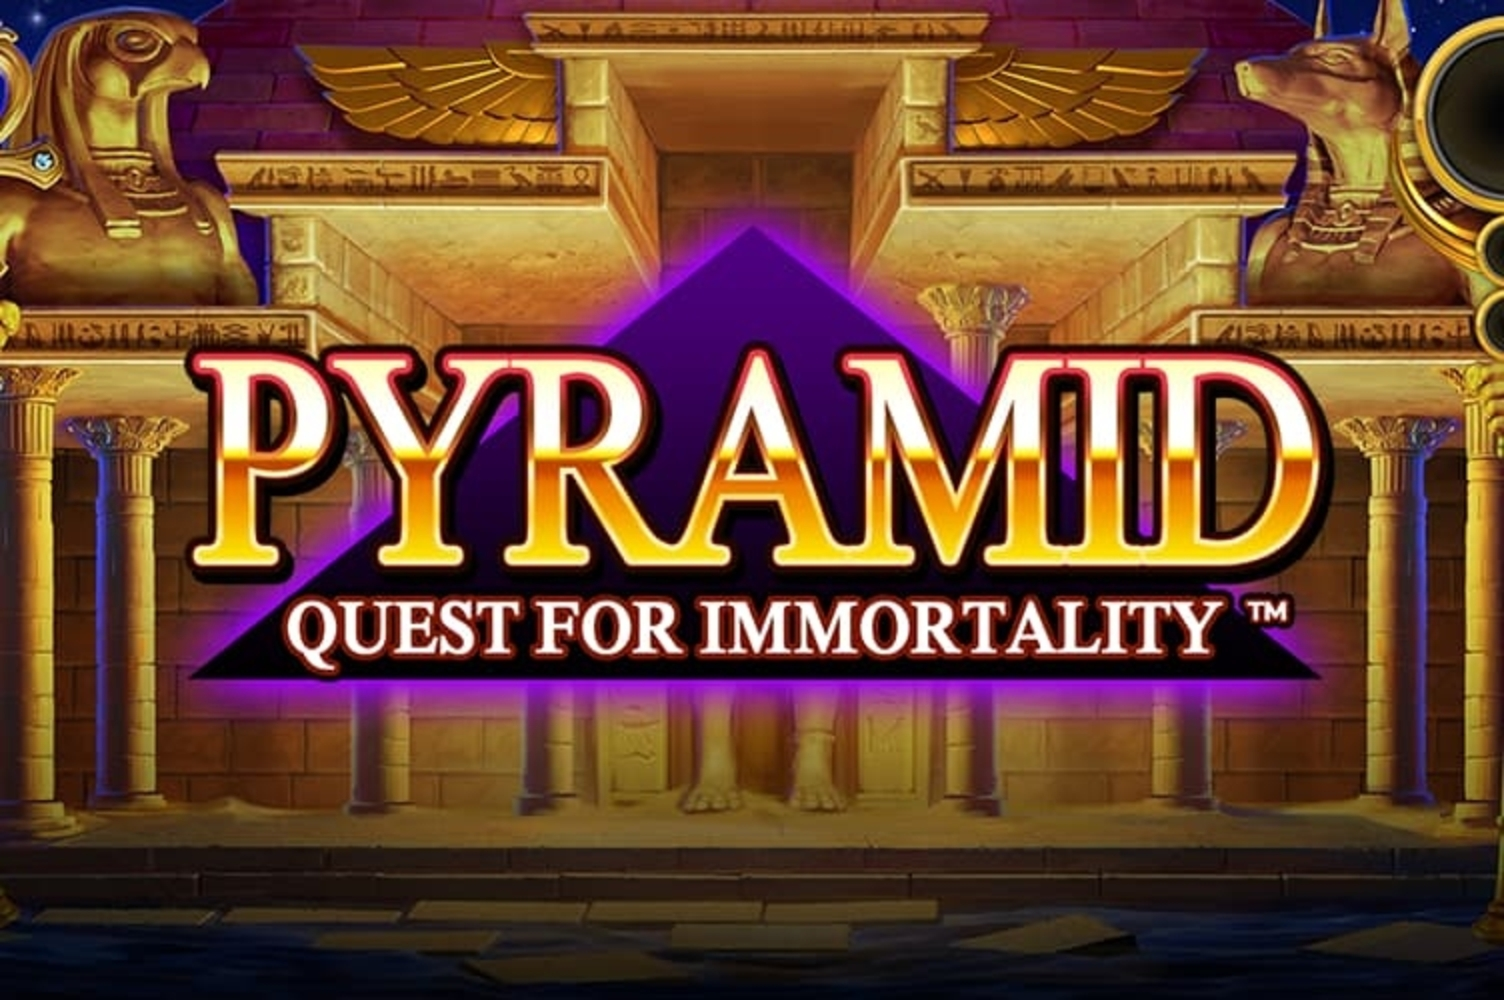 The Pyramid: Quest for Immortality Online Slot Demo Game by NetEnt